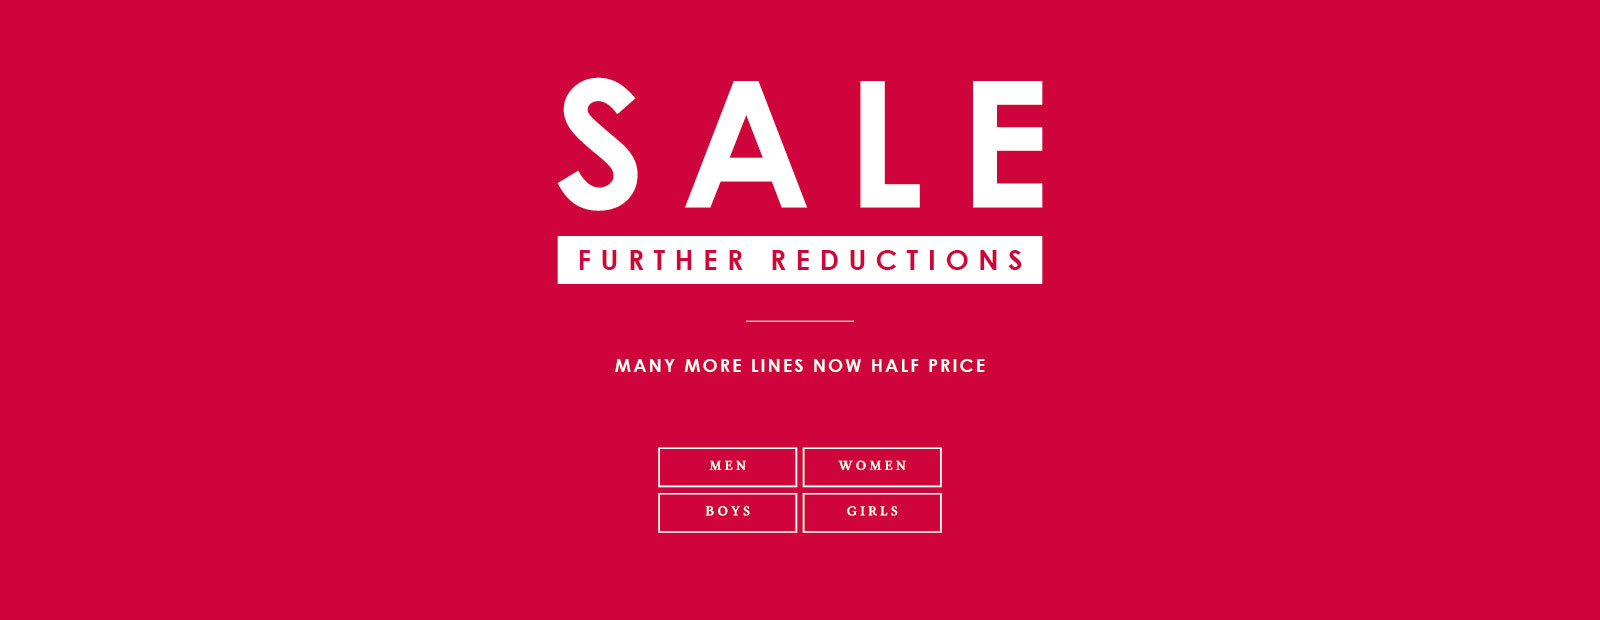 Up To Half Price Sale - More Lines Added